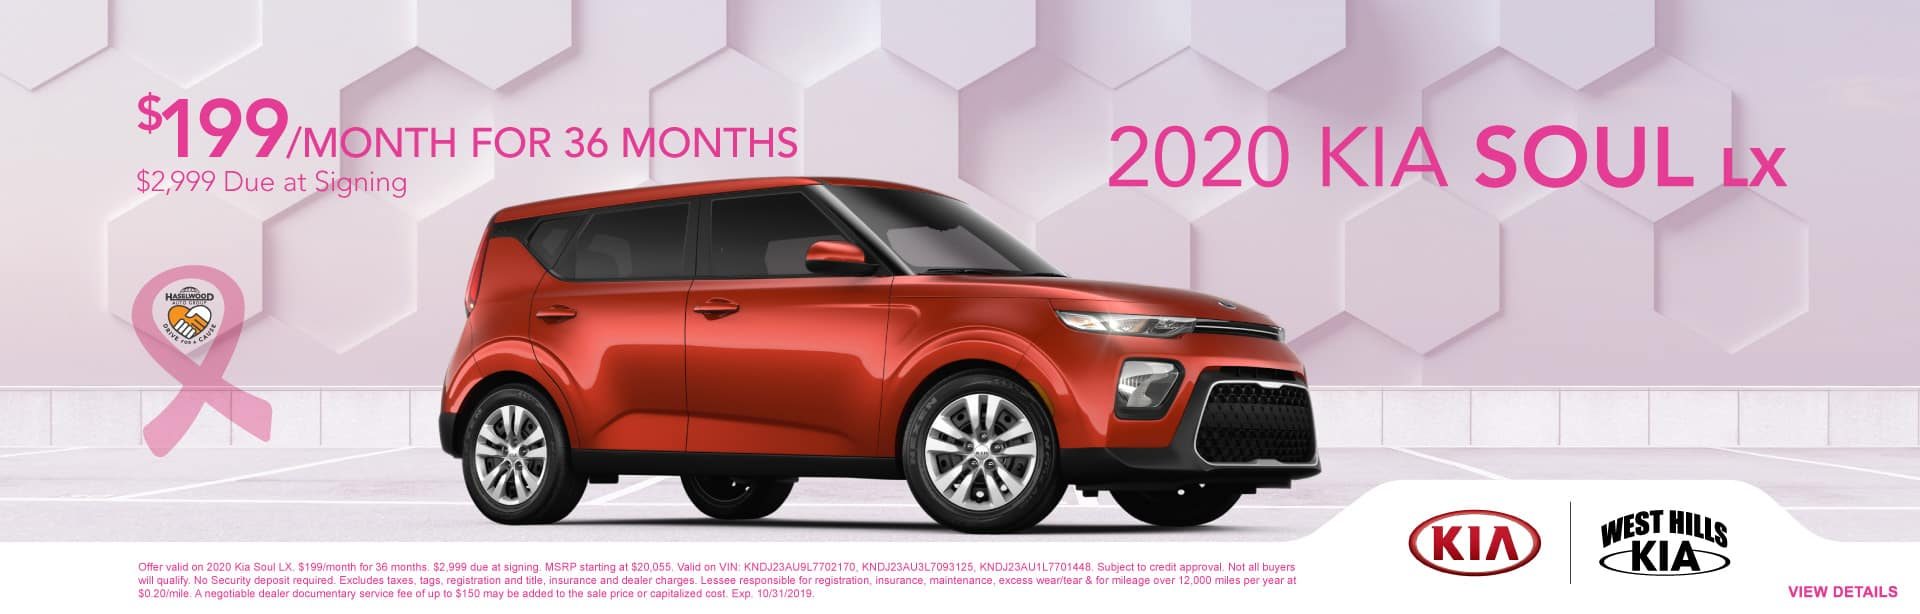 2020 Kia Soul LX $199/month for 36 months  $2,999 Due at Signing   Offer valid on 2020 Kia Soul LX. $199/month for 36 months. $2,999 due at signing. MSRP starting at $20,055. Valid on VIN: KNDJ23AU9L7702170, KNDJ23AU3L7093125, KNDJ23AU1L7701448. Subject to credit approval. Not all buyers will qualify. No Security deposit required. Excludes taxes, tags, registration and title, insurance and dealer charges. Lessee responsible for registration, insurance, maintenance, excess wear/tear & for mileage over 12,000 miles per year at $0.20/mile. A negotiable dealer documentary service fee of up to $150 may be added to the sale price or capitalized cost. Exp. 10/31/2019.